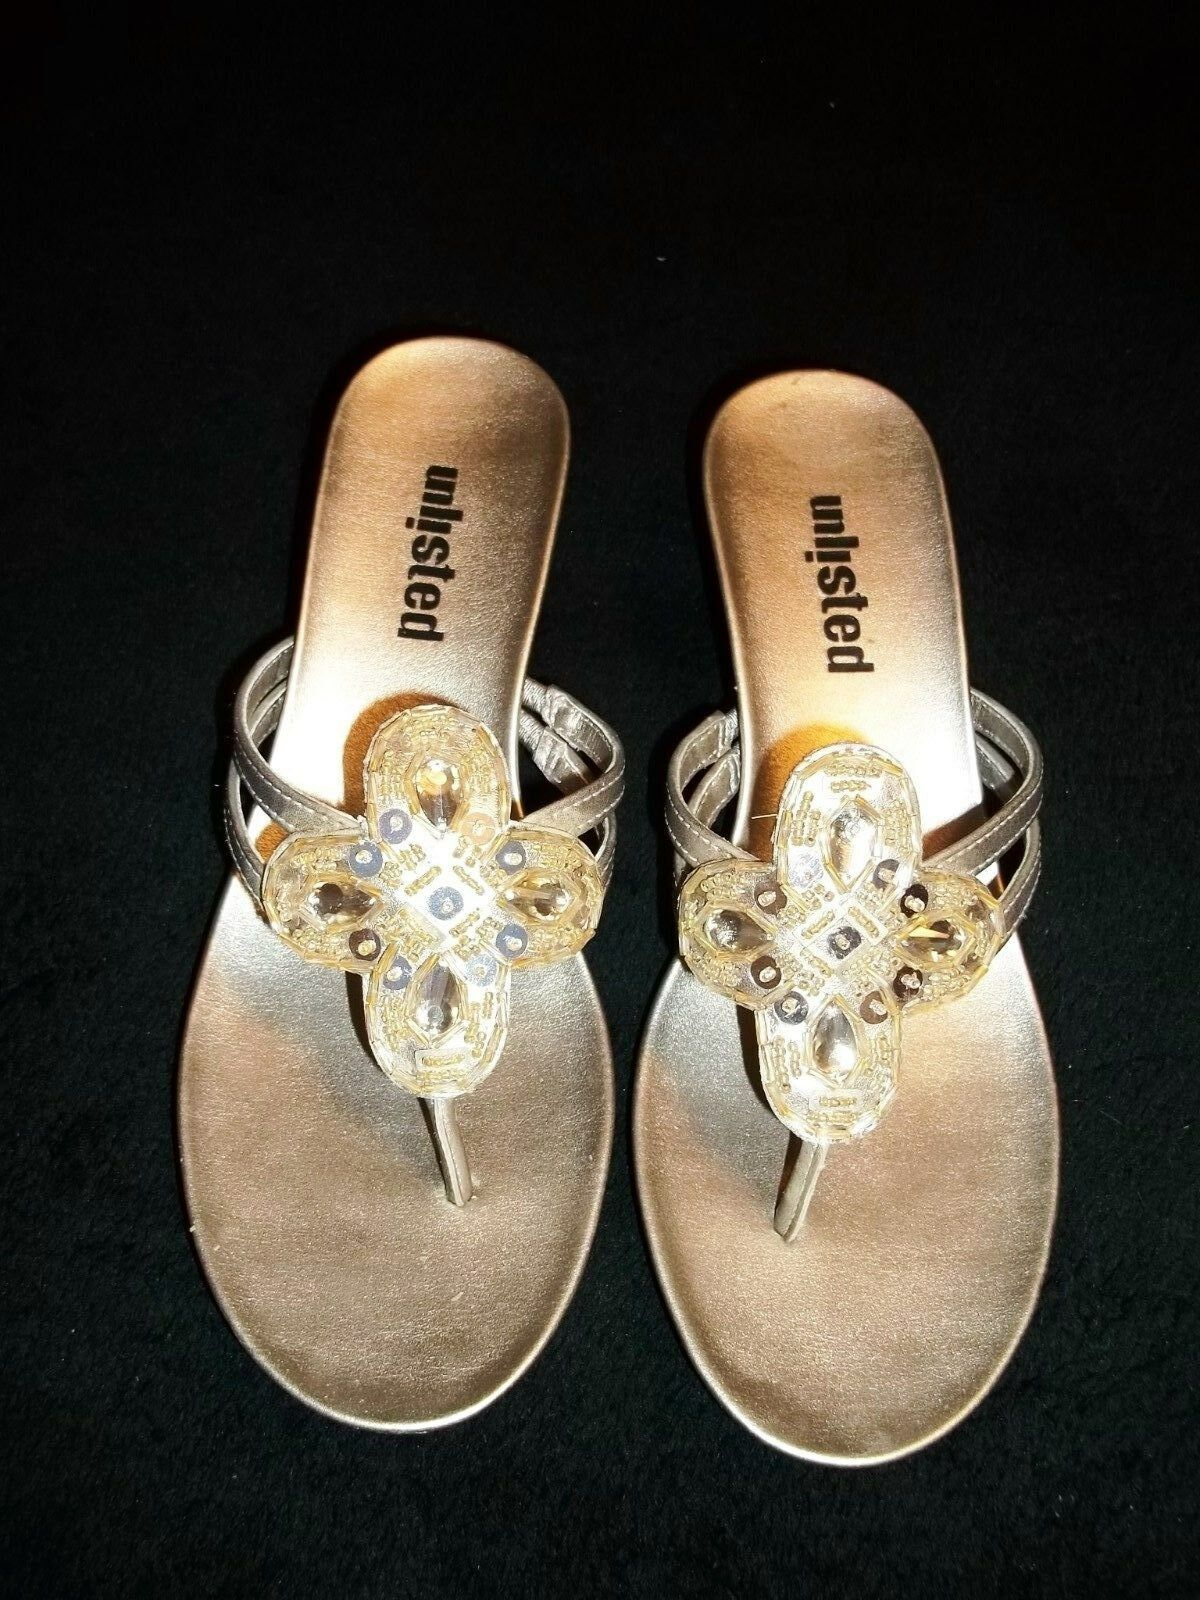 KENNETH COLE UNLISTED Champagne Gold Mules Sandals M Shoes BOBBIN Size 6 M Sandals 5e943f